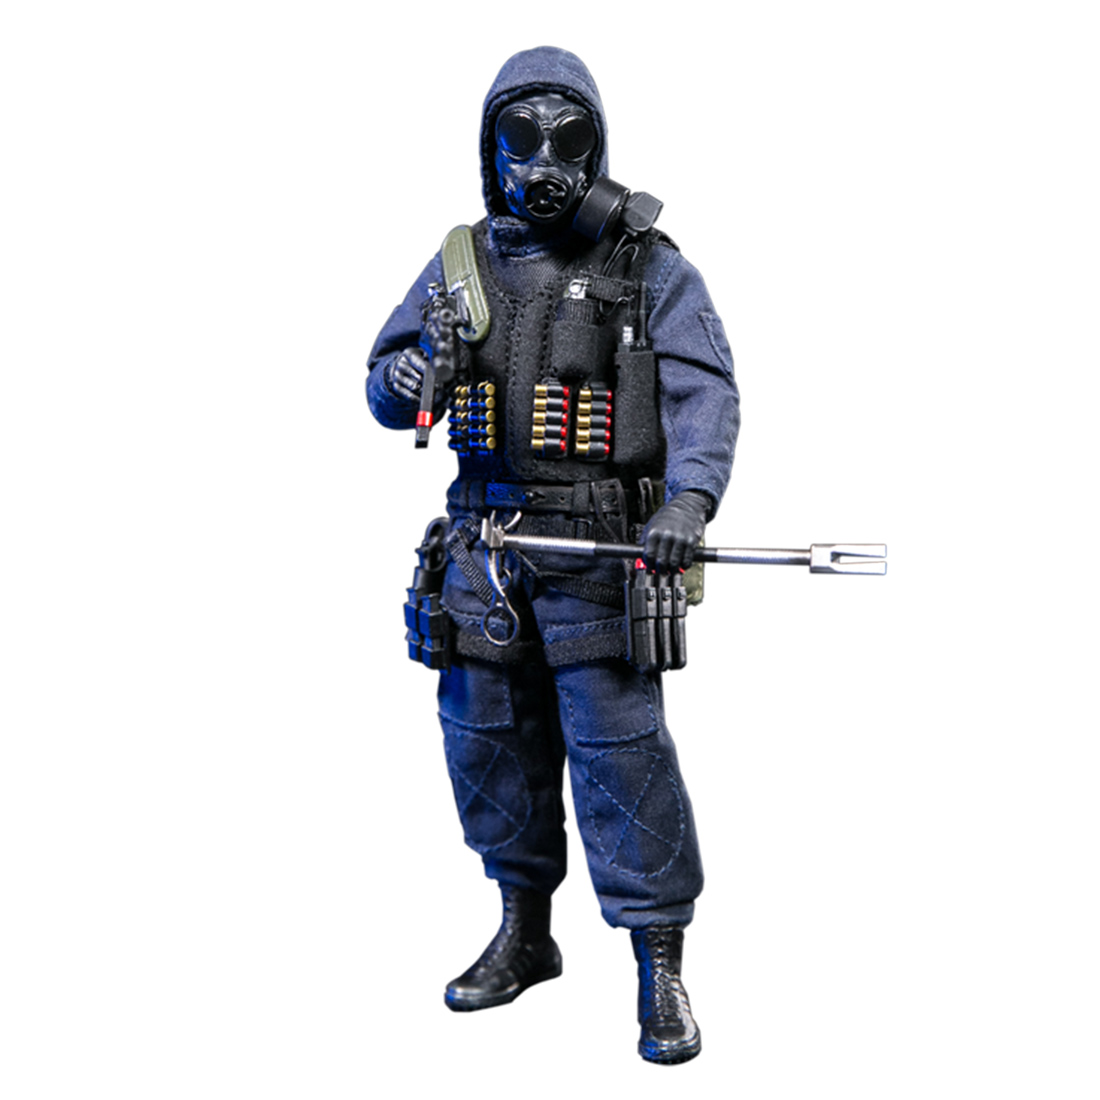 15cm 1/12 Soldier Action Figure Realistic Headsculpt DIY Handmade SAS CRW Breacher Soldier Model